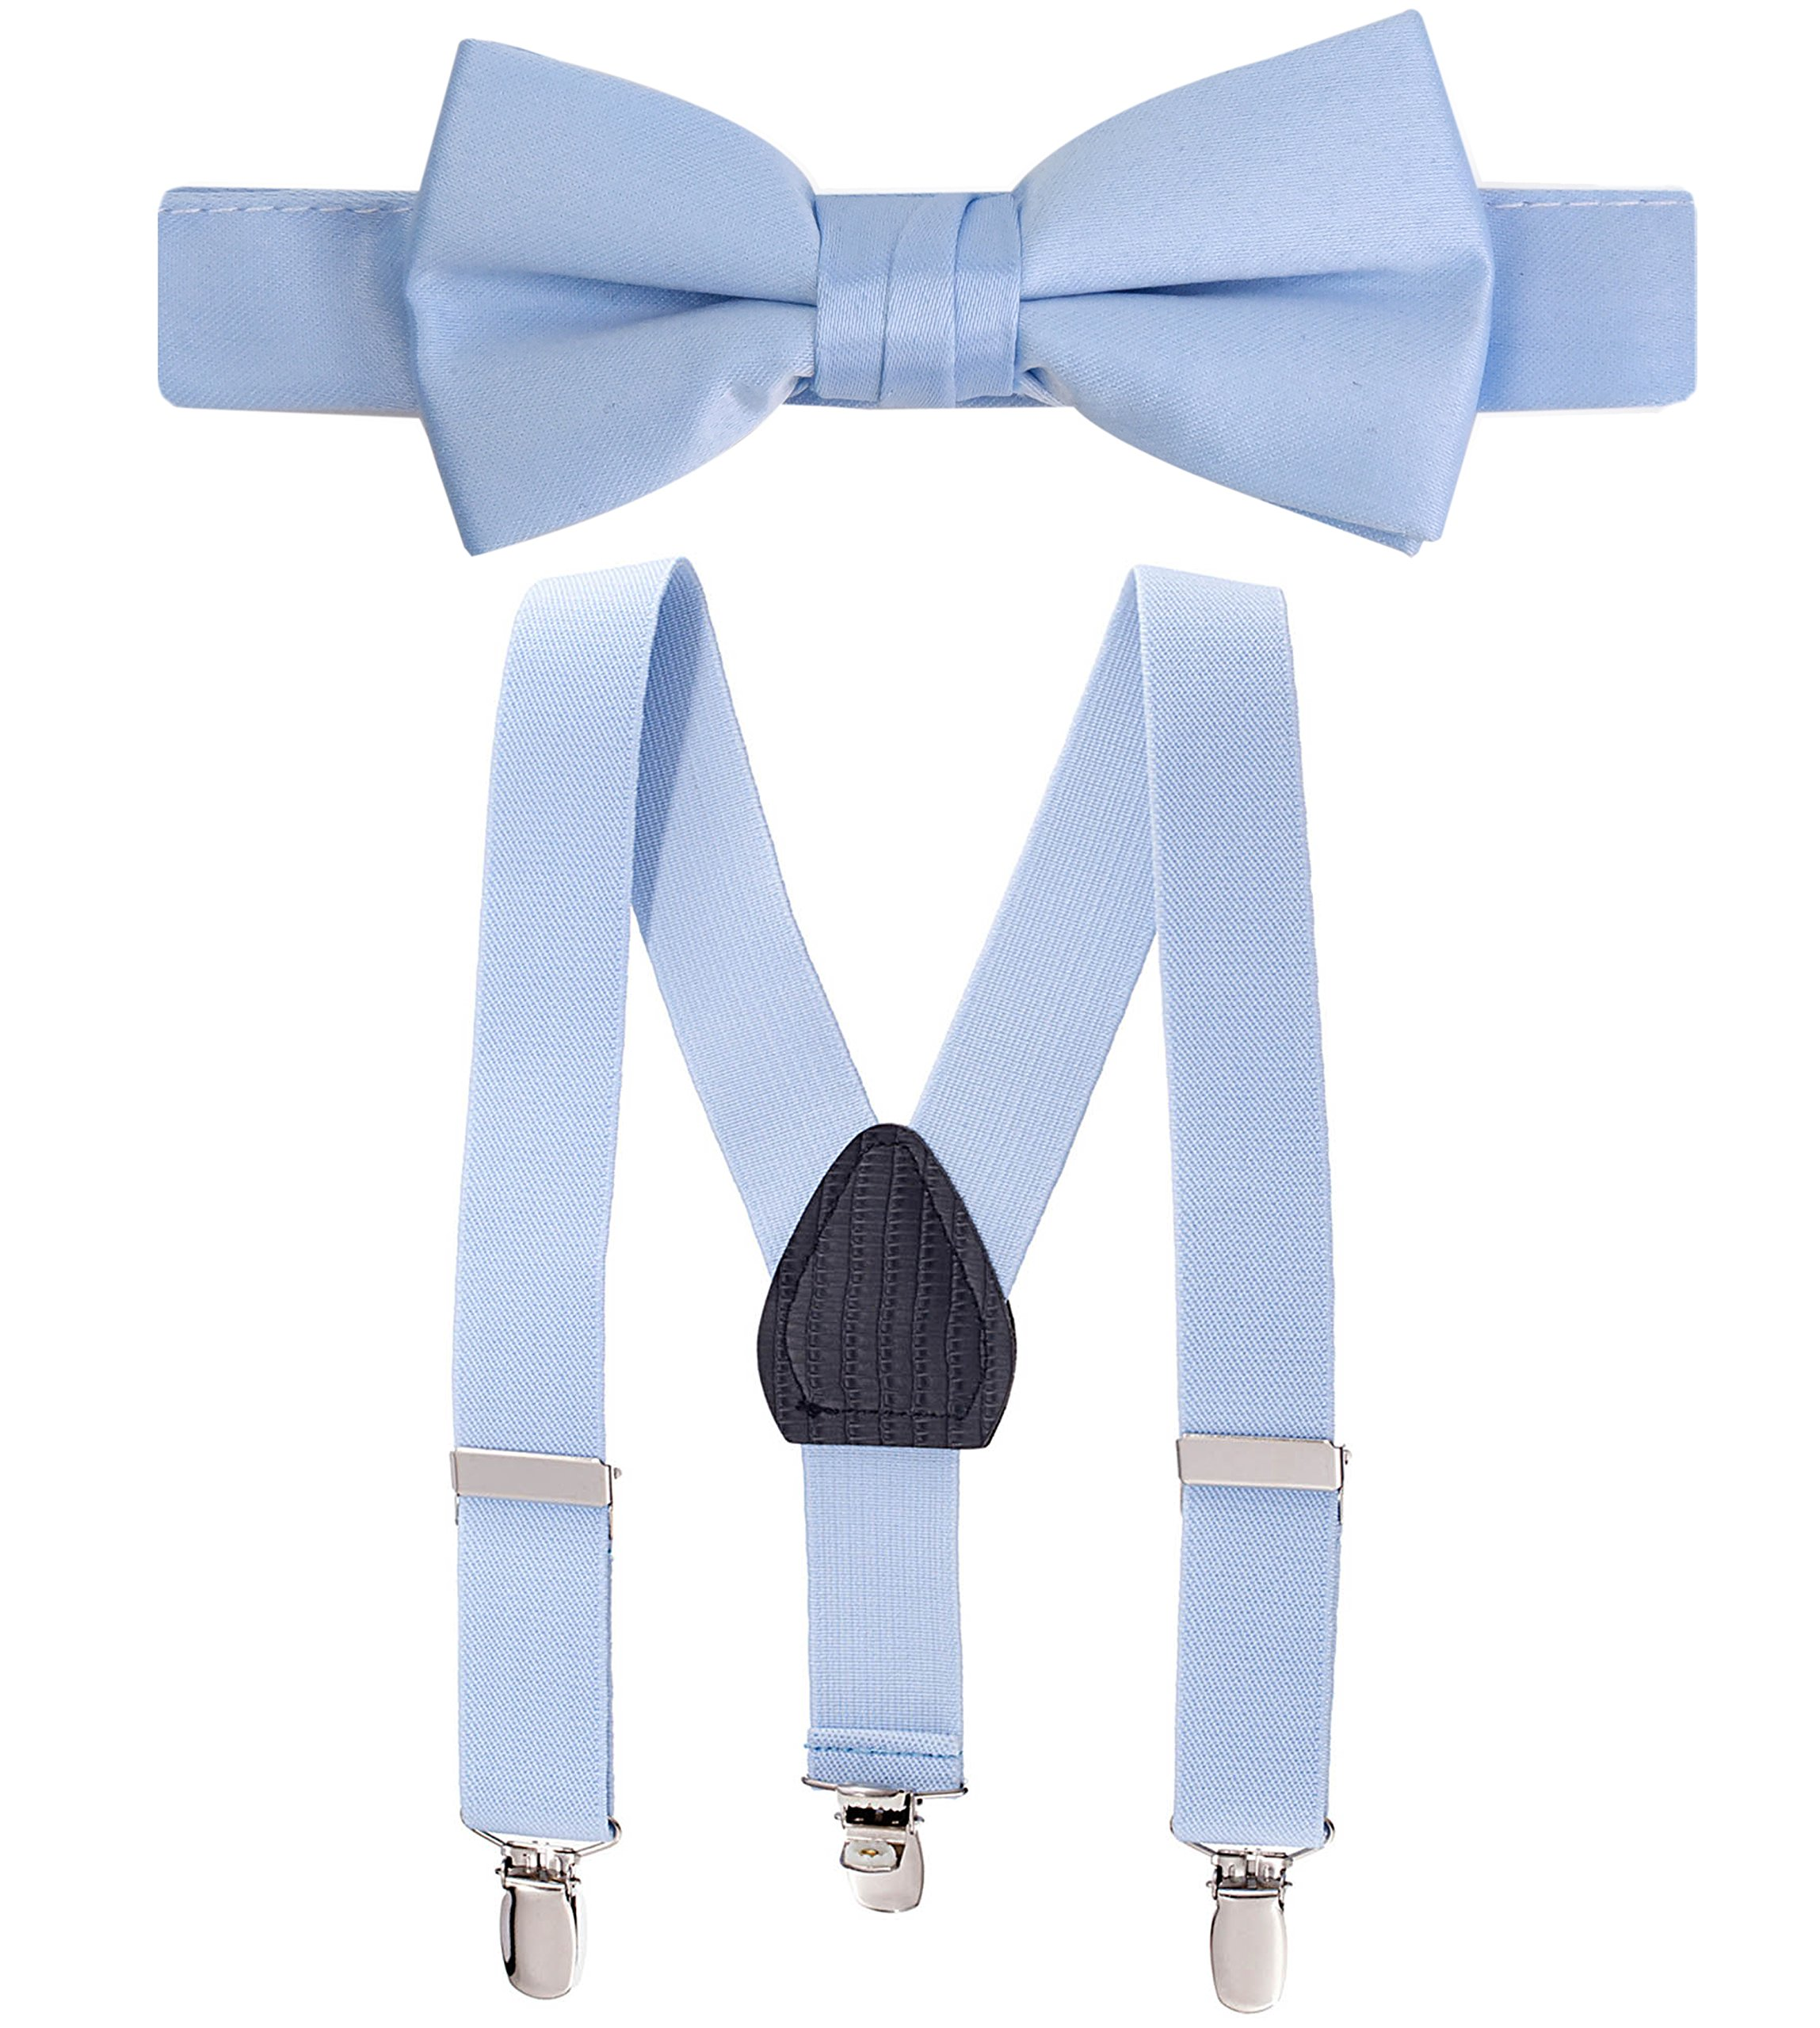 Hold'Em Suspender and Bow Tie Set for Kids, Boys, and Baby - Proudly Made in USA - Extra Sturdy Polished Silver Metal Clips, Pre tied Bow Tie-Light Blue 22''